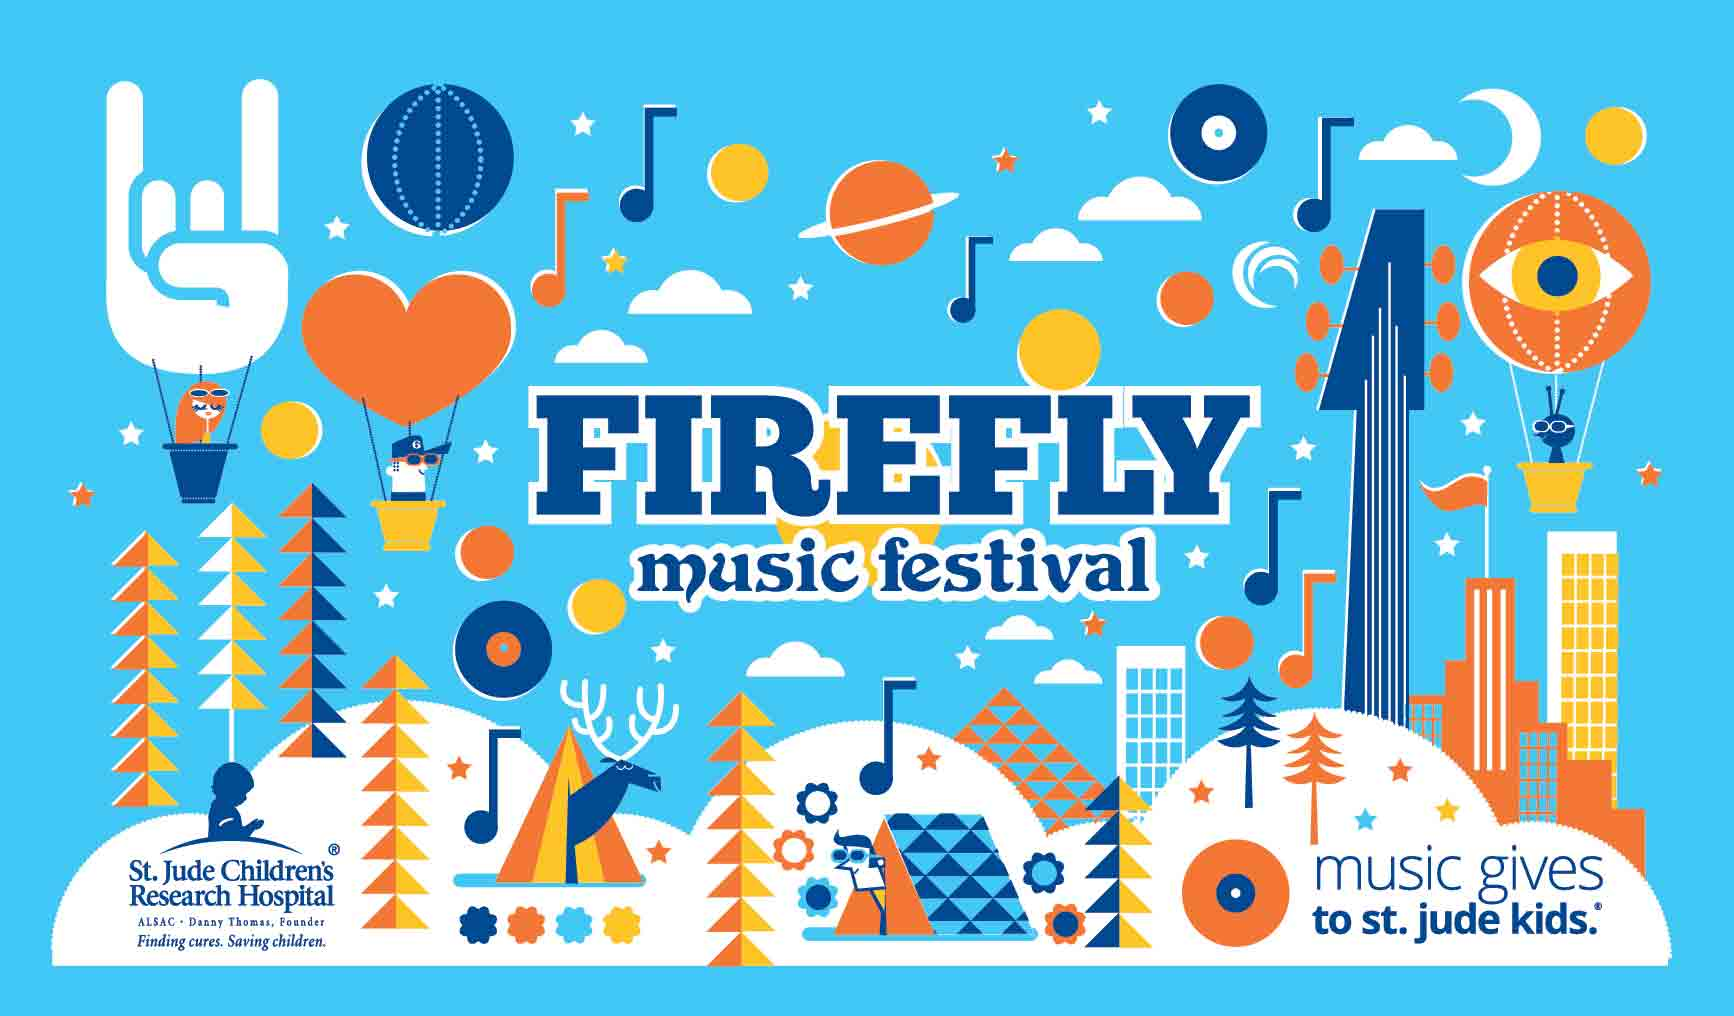 Firefly Festival artwork 2017 for Camelback festival water bottle